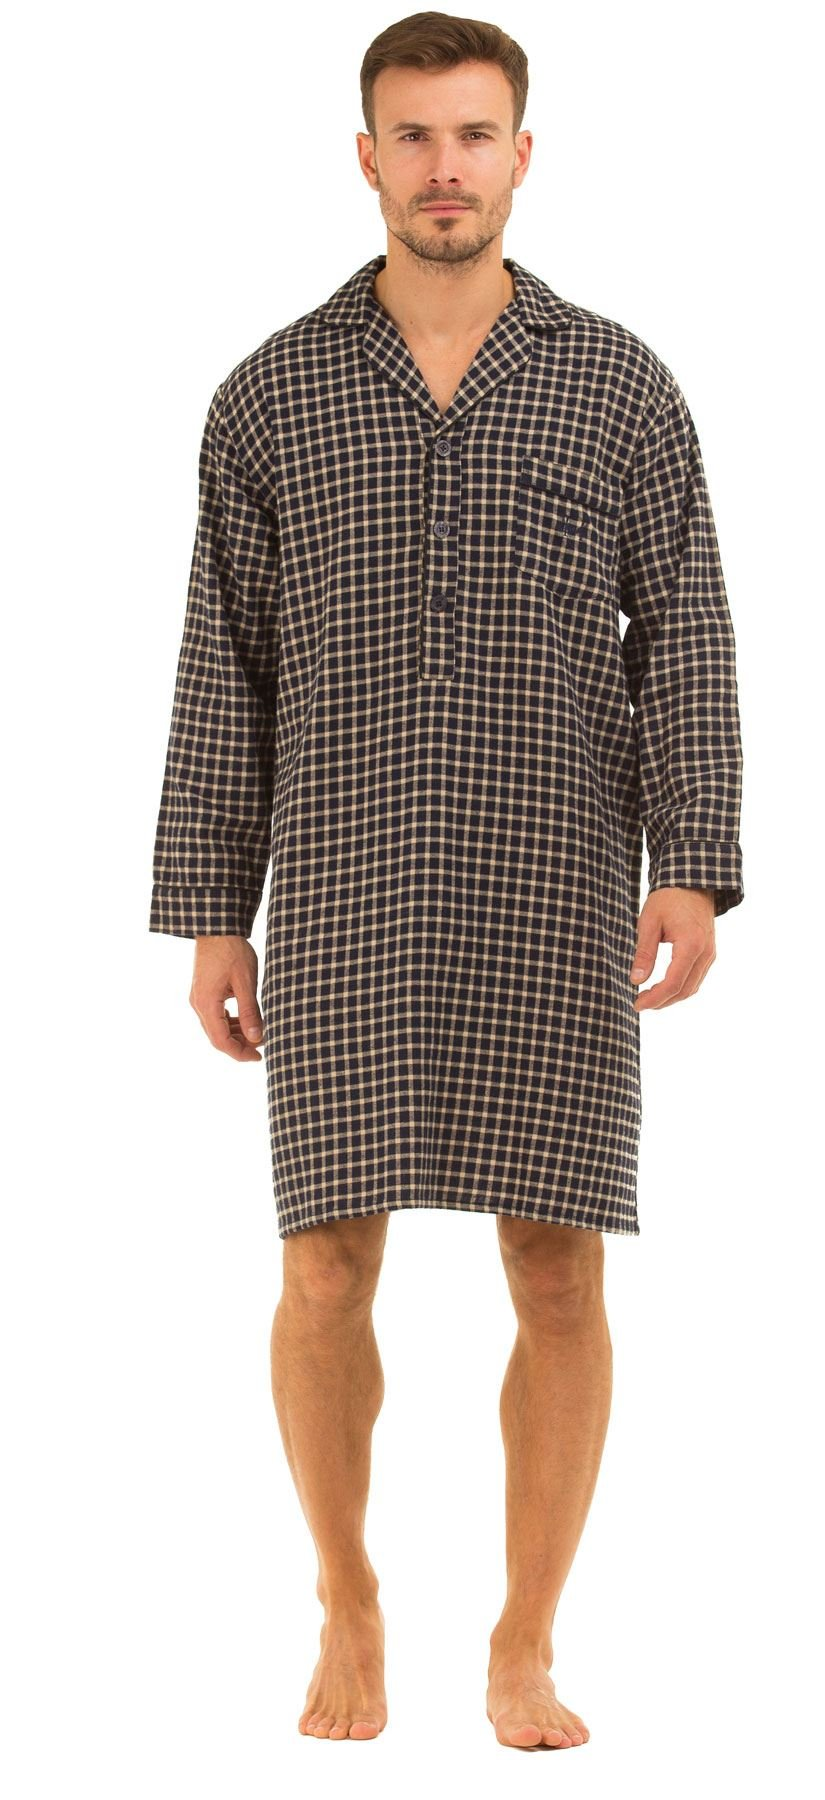 Haigman Men's Brushed 100% Cotton Nightshirt Large (41-43) Navy/Beige Check